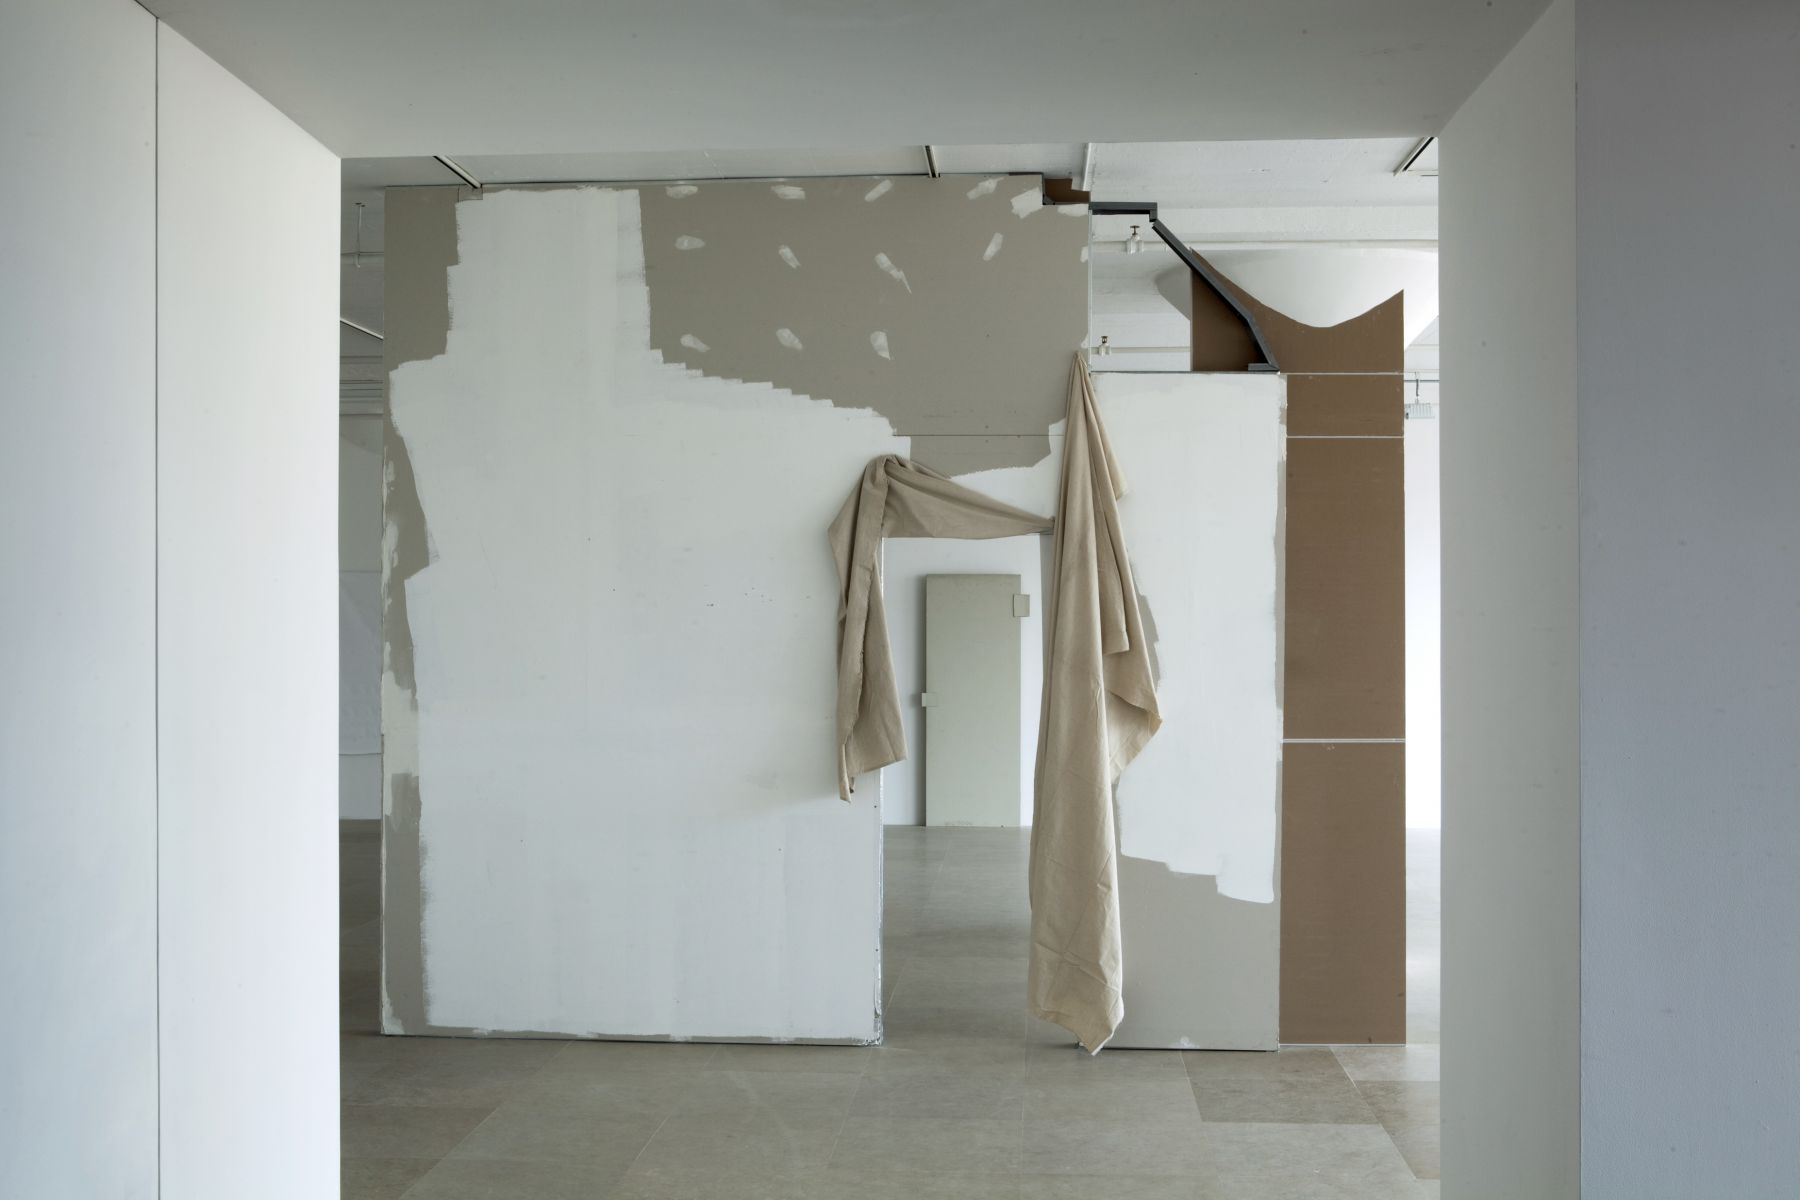 Gedi Sibony, The Cutters, 2007/2010, canvas, paint, wall, 137 x 164 x 13 inches